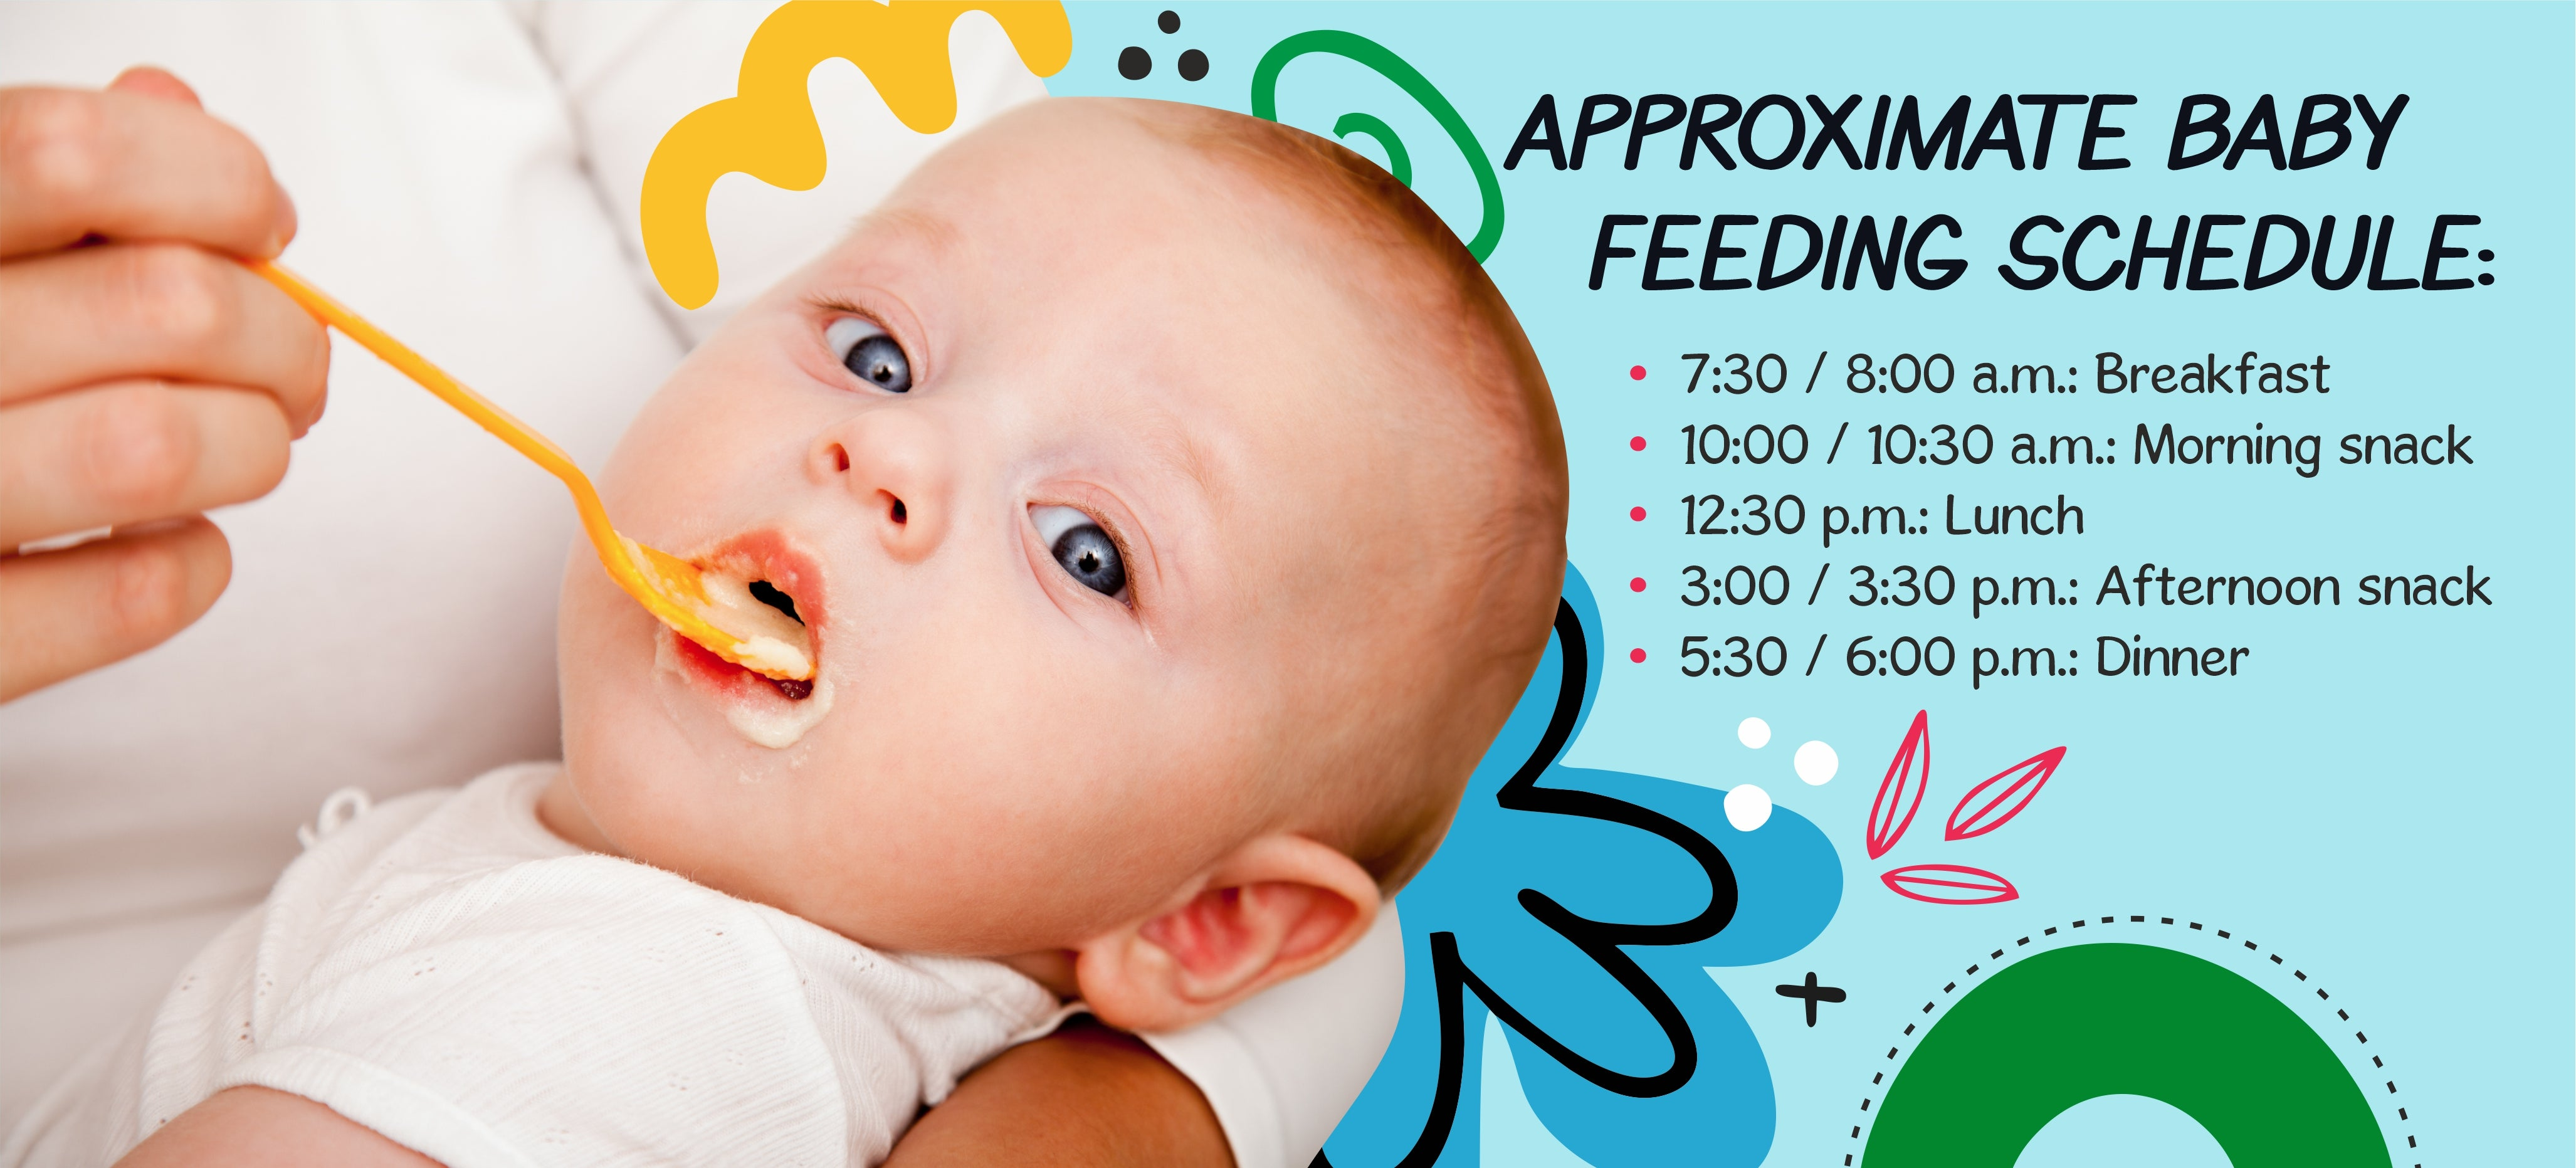 Here is a sample schedule that you can use as a starting point and adjust to suit your toddler's needs.